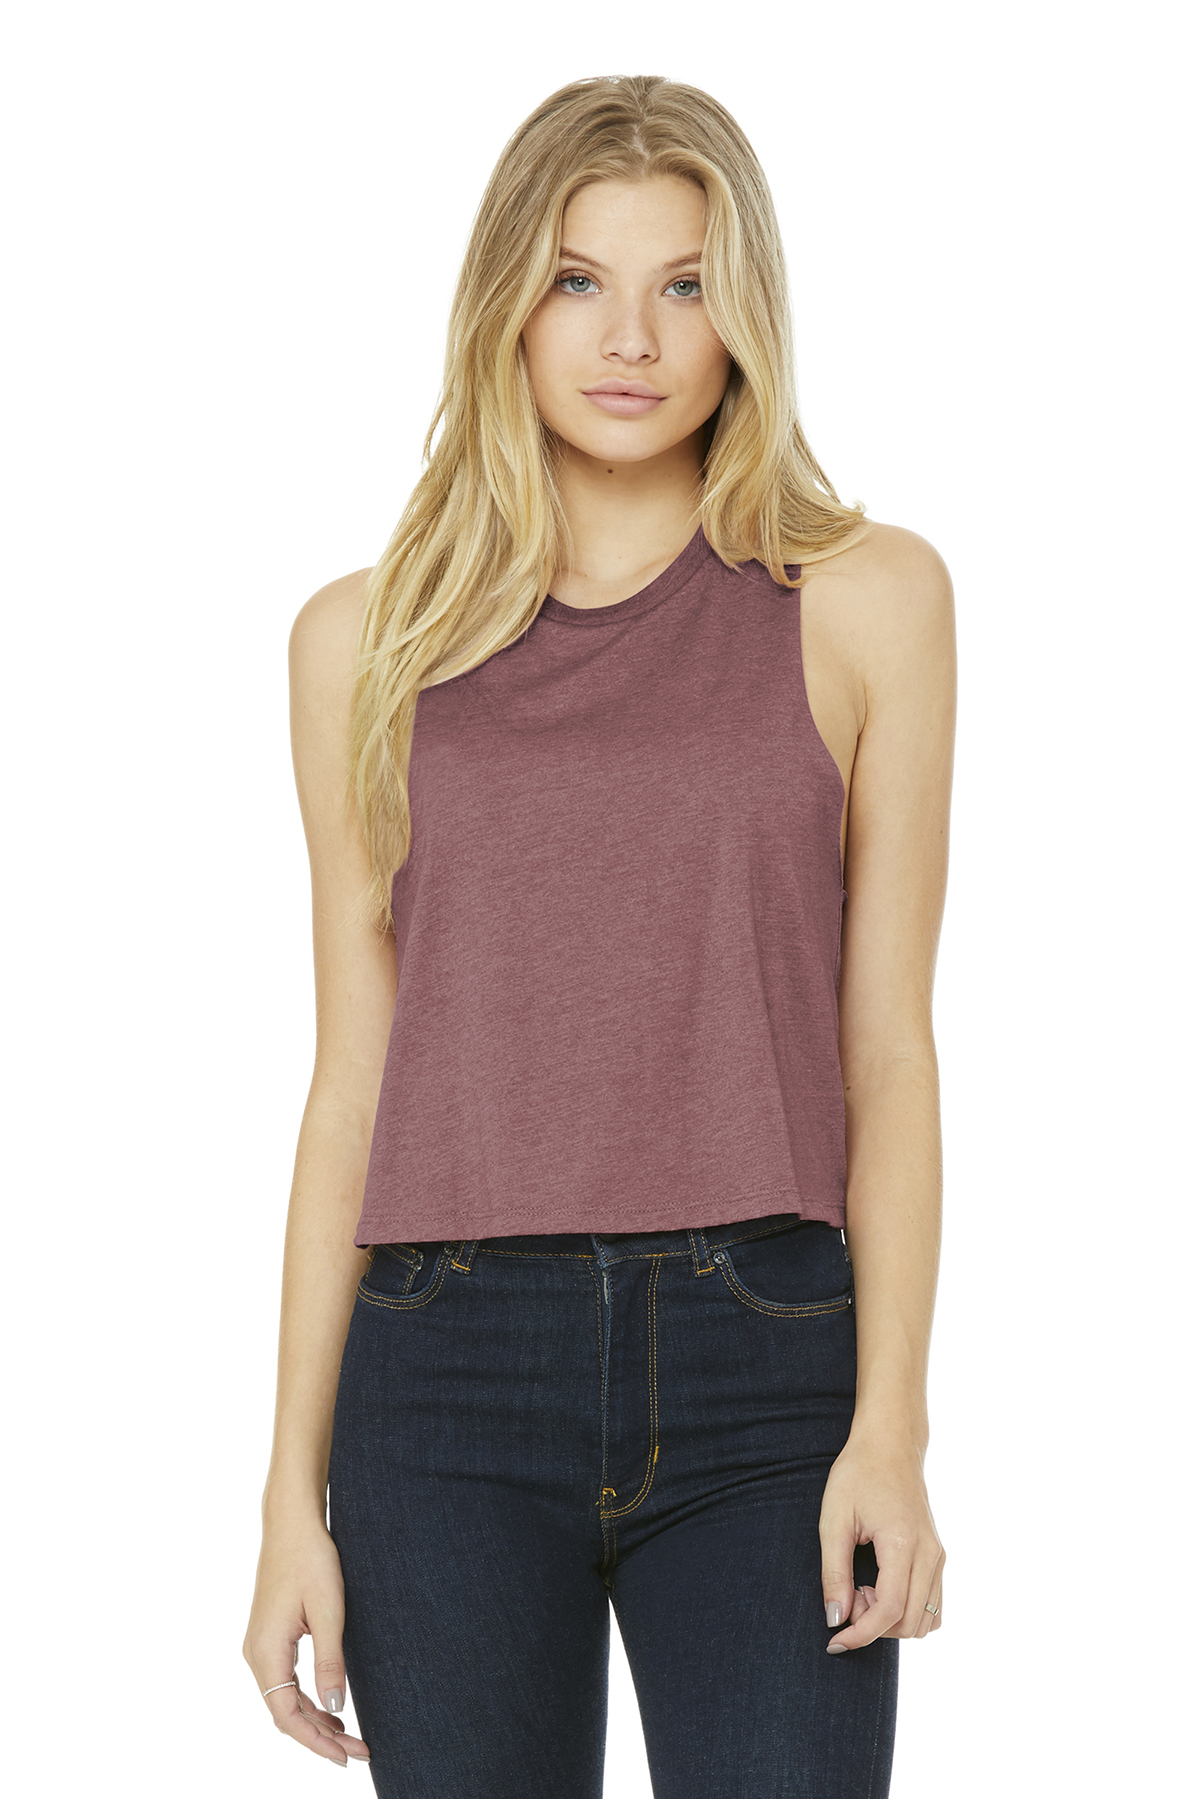 Bella Canvas 6682 Womens Racerback Cropped Tank from NYFifth